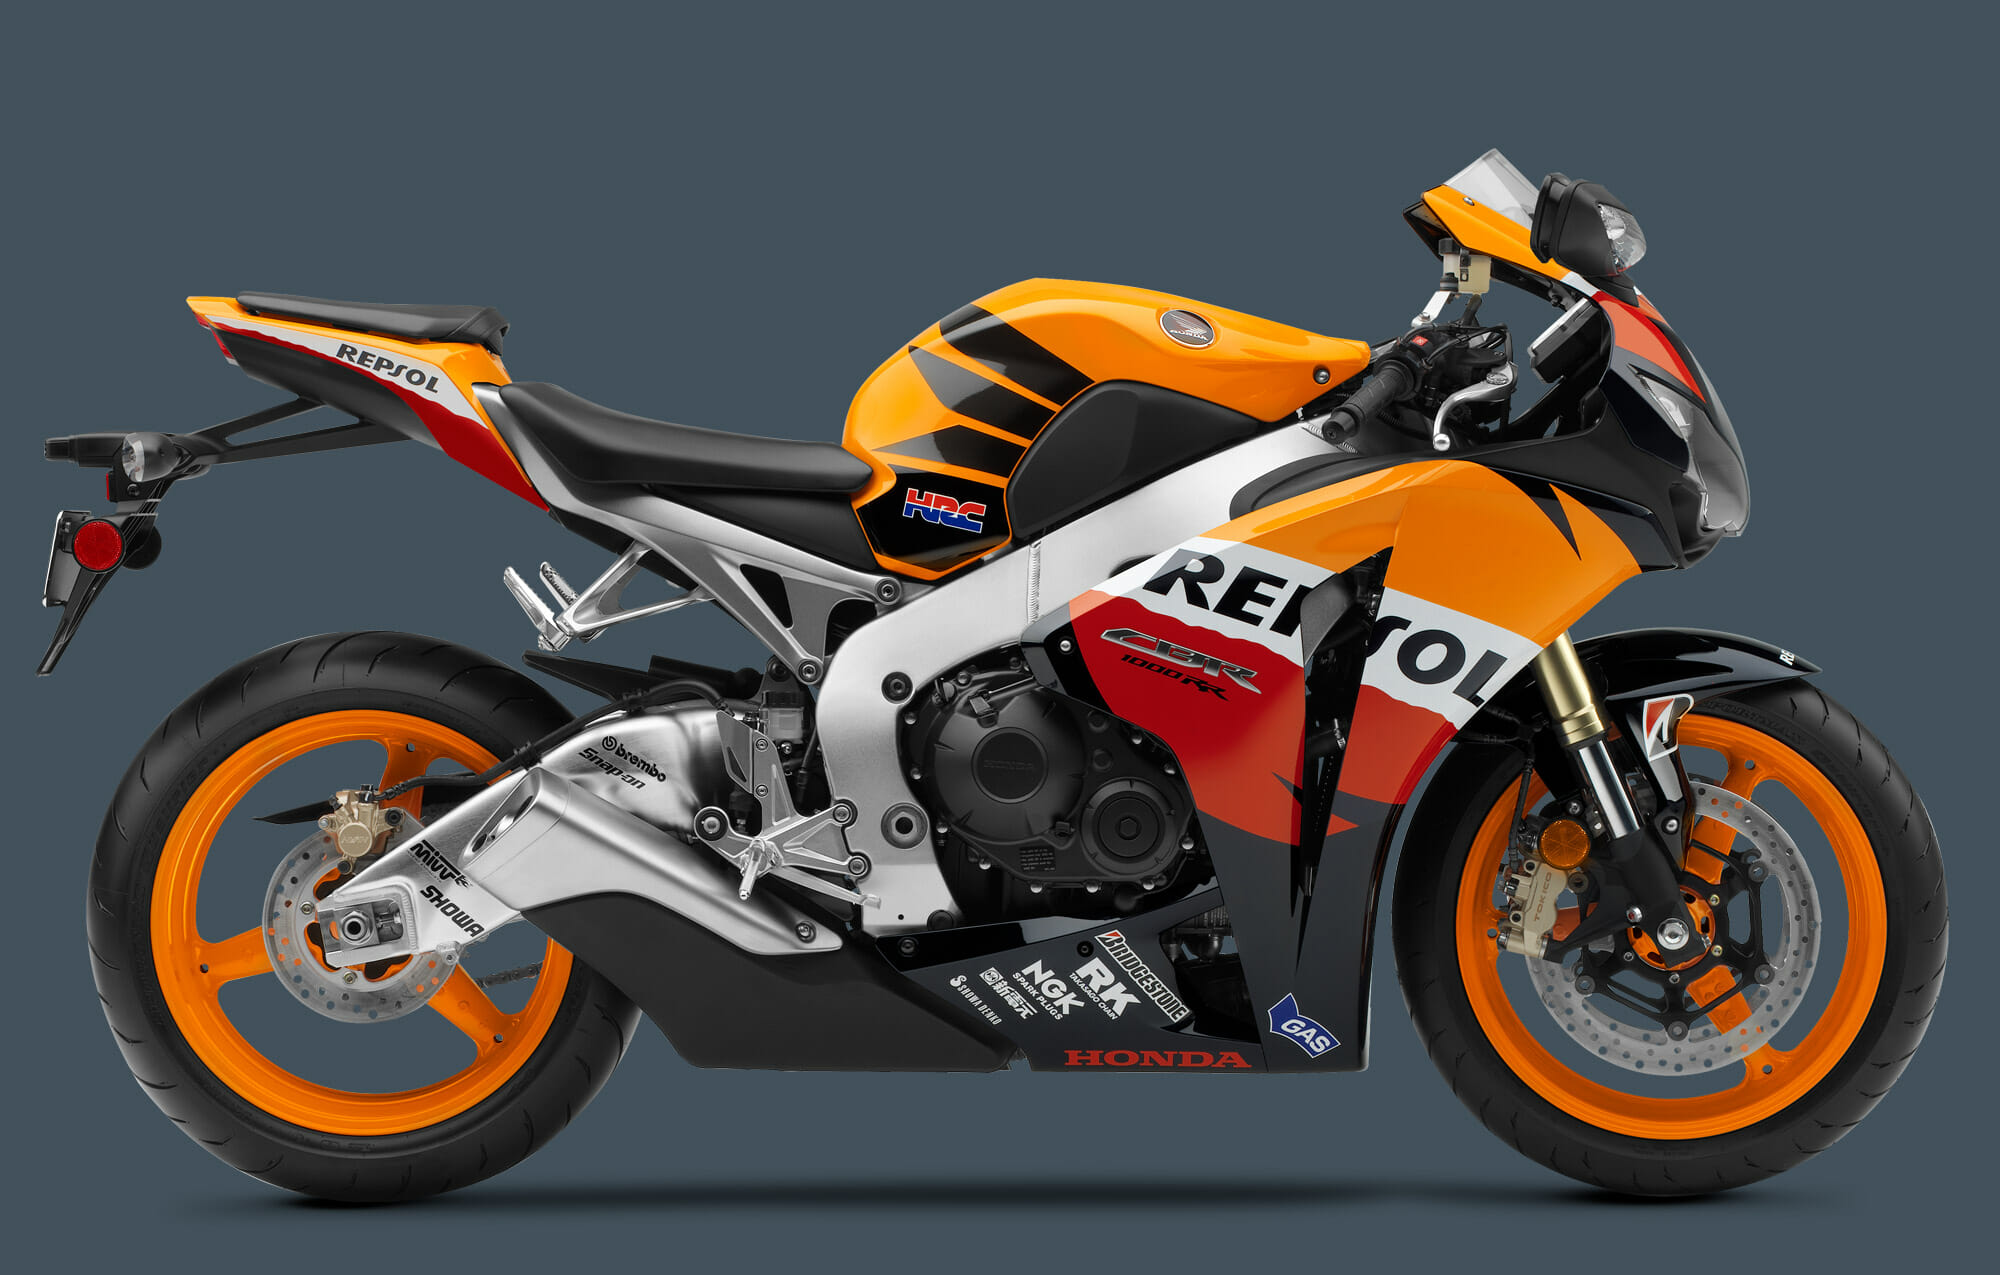 Repsol stock options